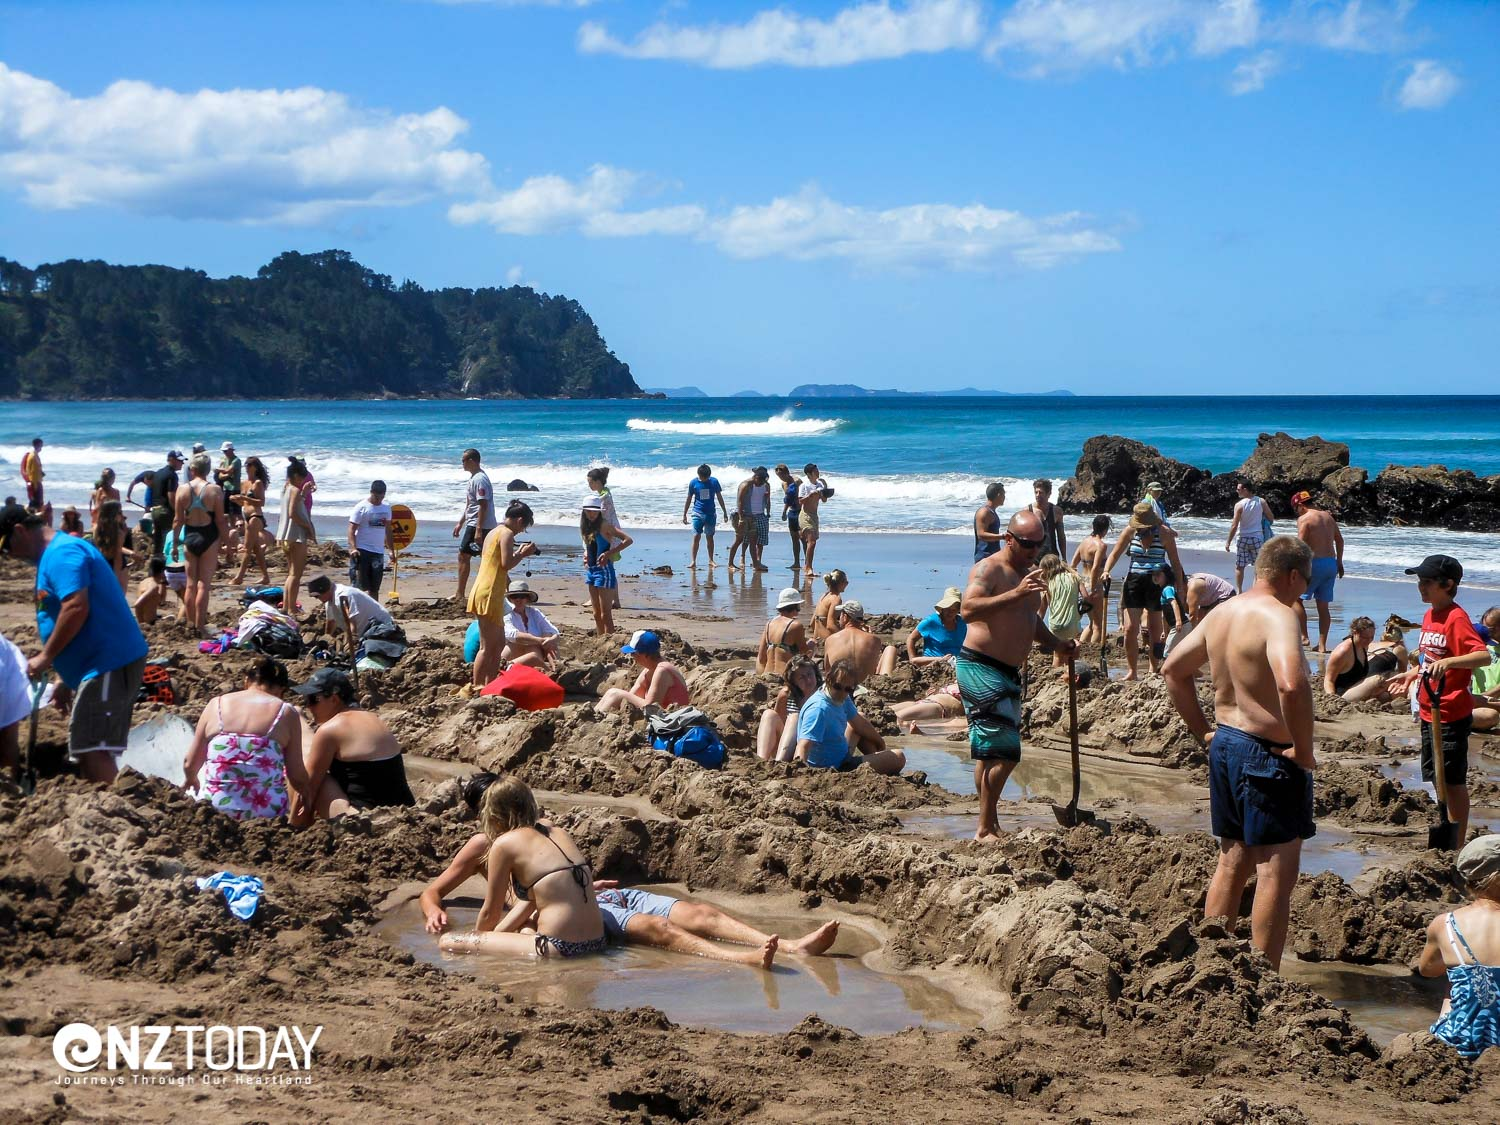 A busy scene at Hot Water Beach